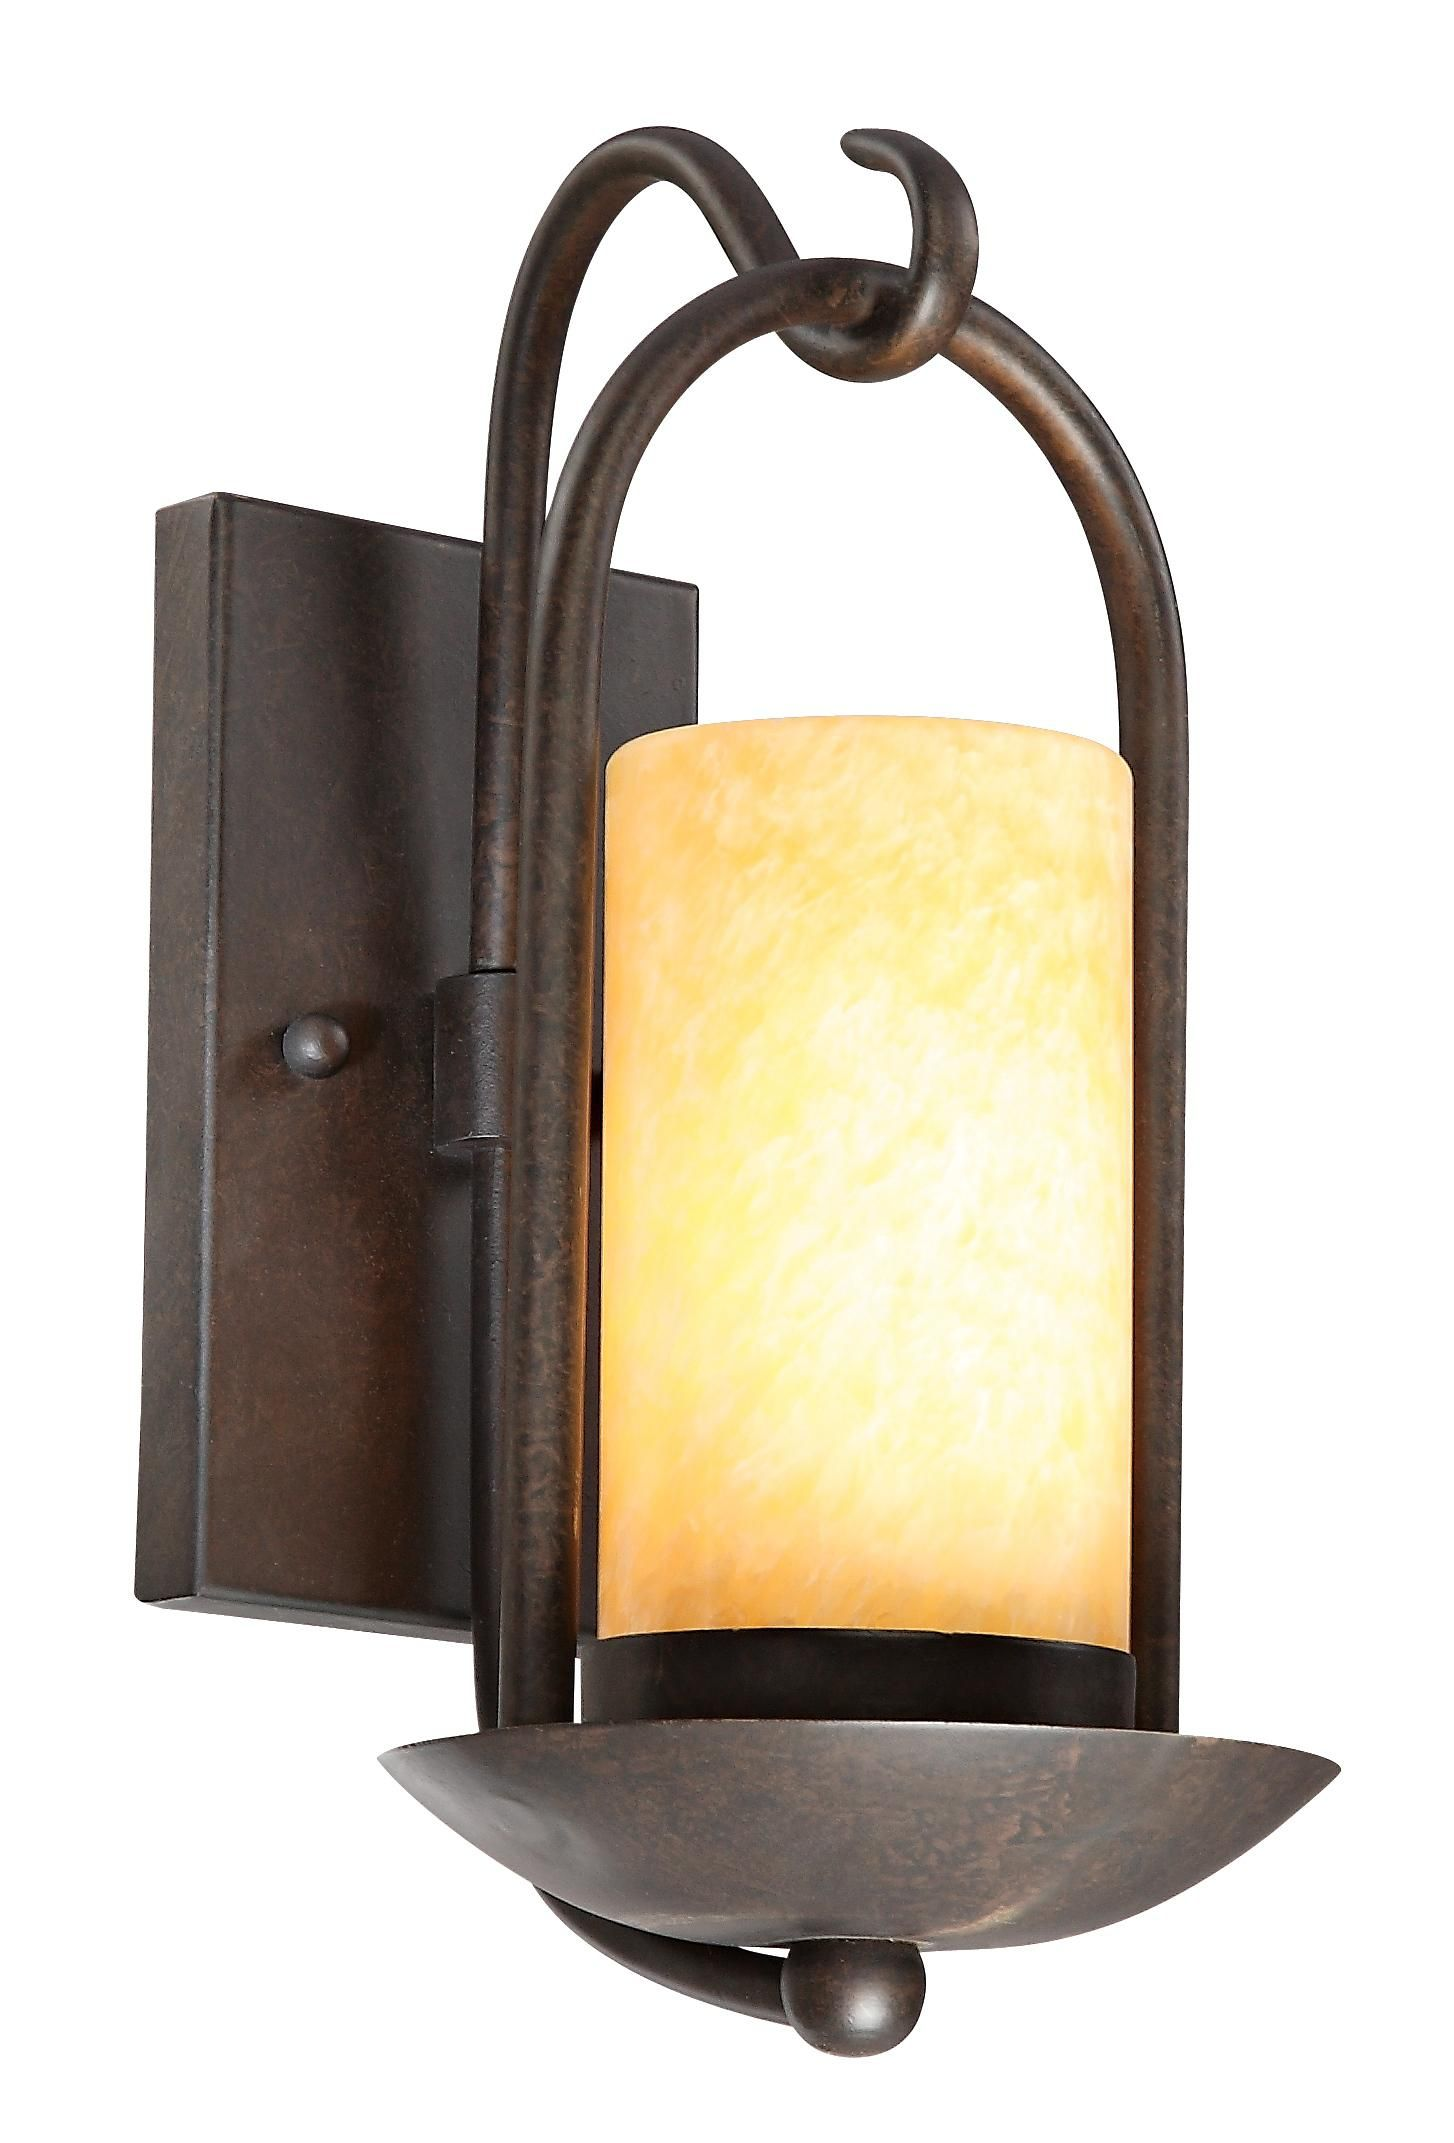 Onyx Stone Faux Candle 15 High Espresso Wall Light - $80 | Ideas ...